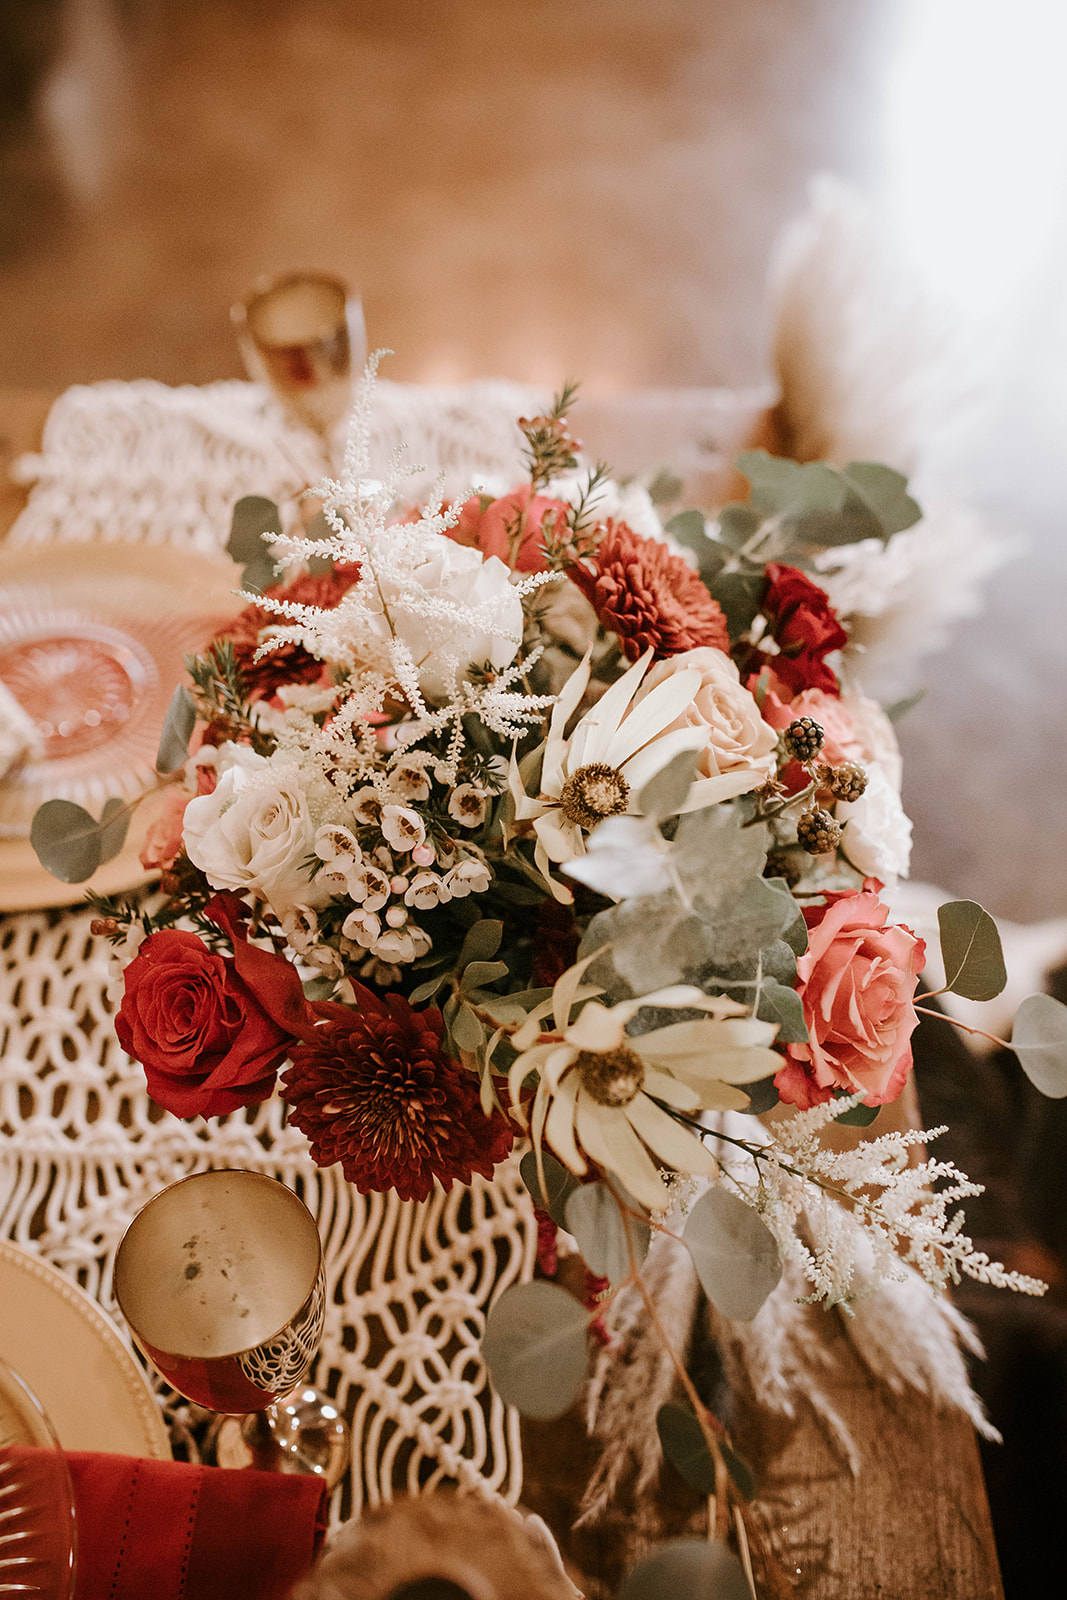 Bohemian wedding flower ideas: Surprise Vow Renewal by Tara Winstead Photography featured on Nashville Bride Guide